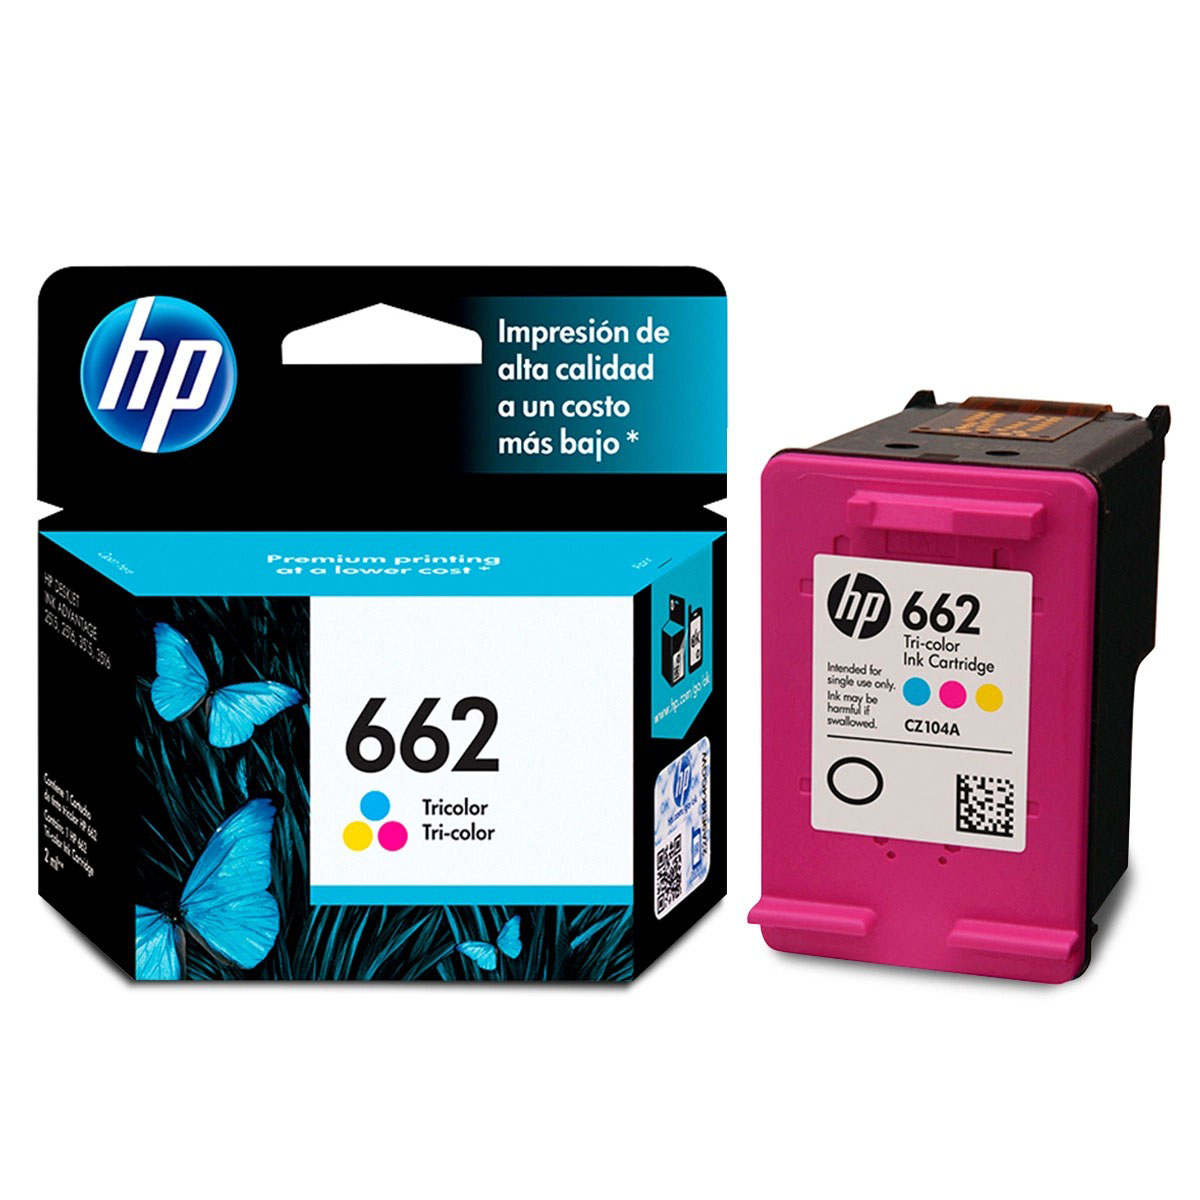 CARTUCHO ORIGINAL HP 662 TRICOLOR, ESTANDAR